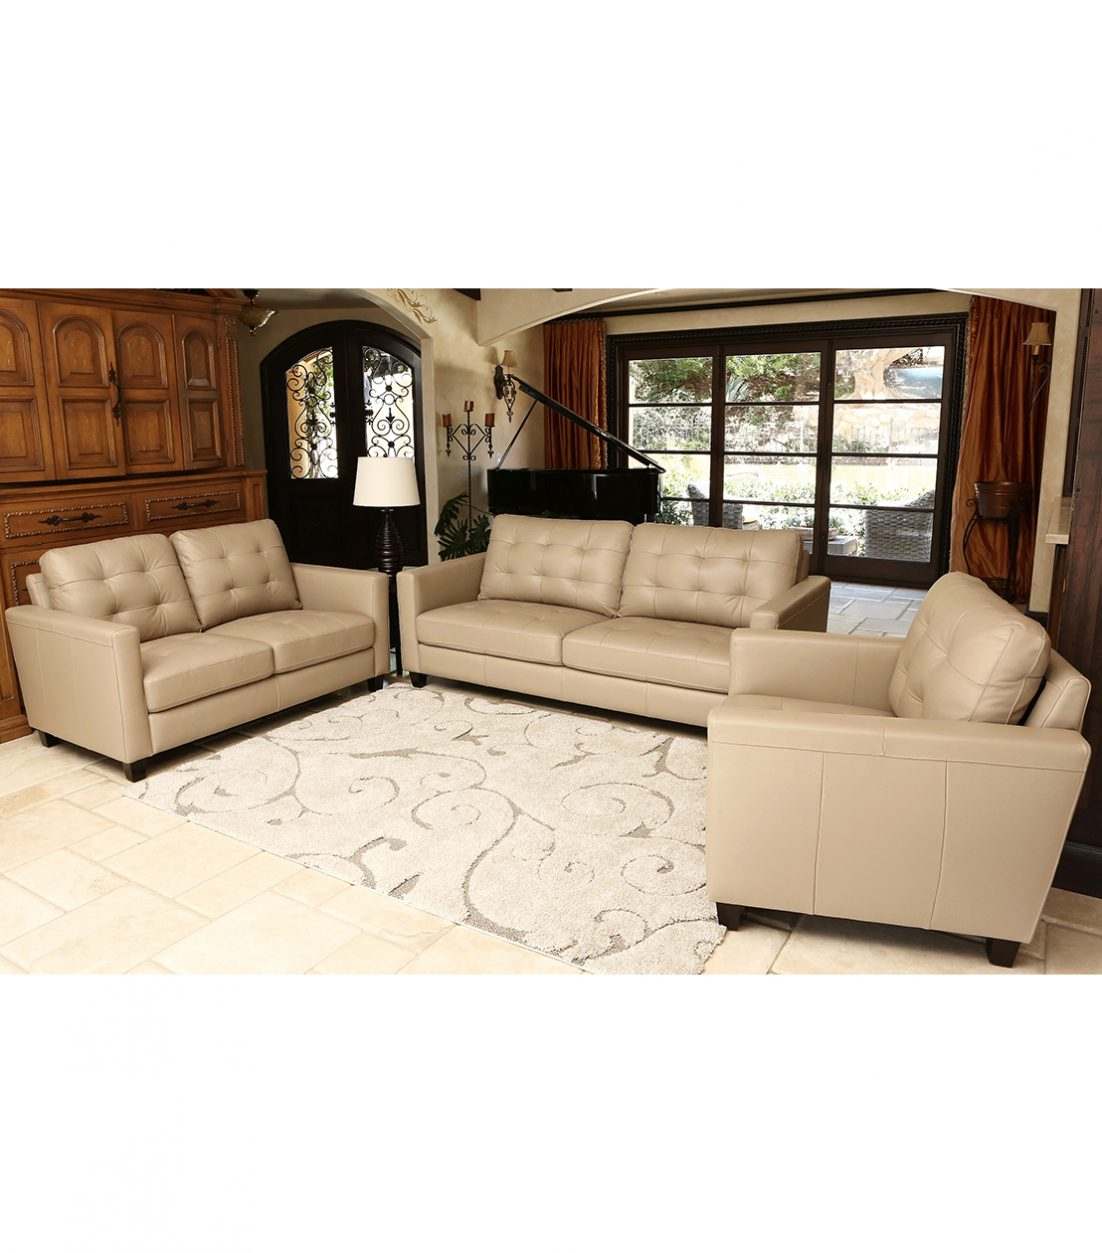 3 Piece Living Room Set Casta Products Pinterest Sofa And Small With Mcdade Ash Sofa Chairs (View 8 of 25)